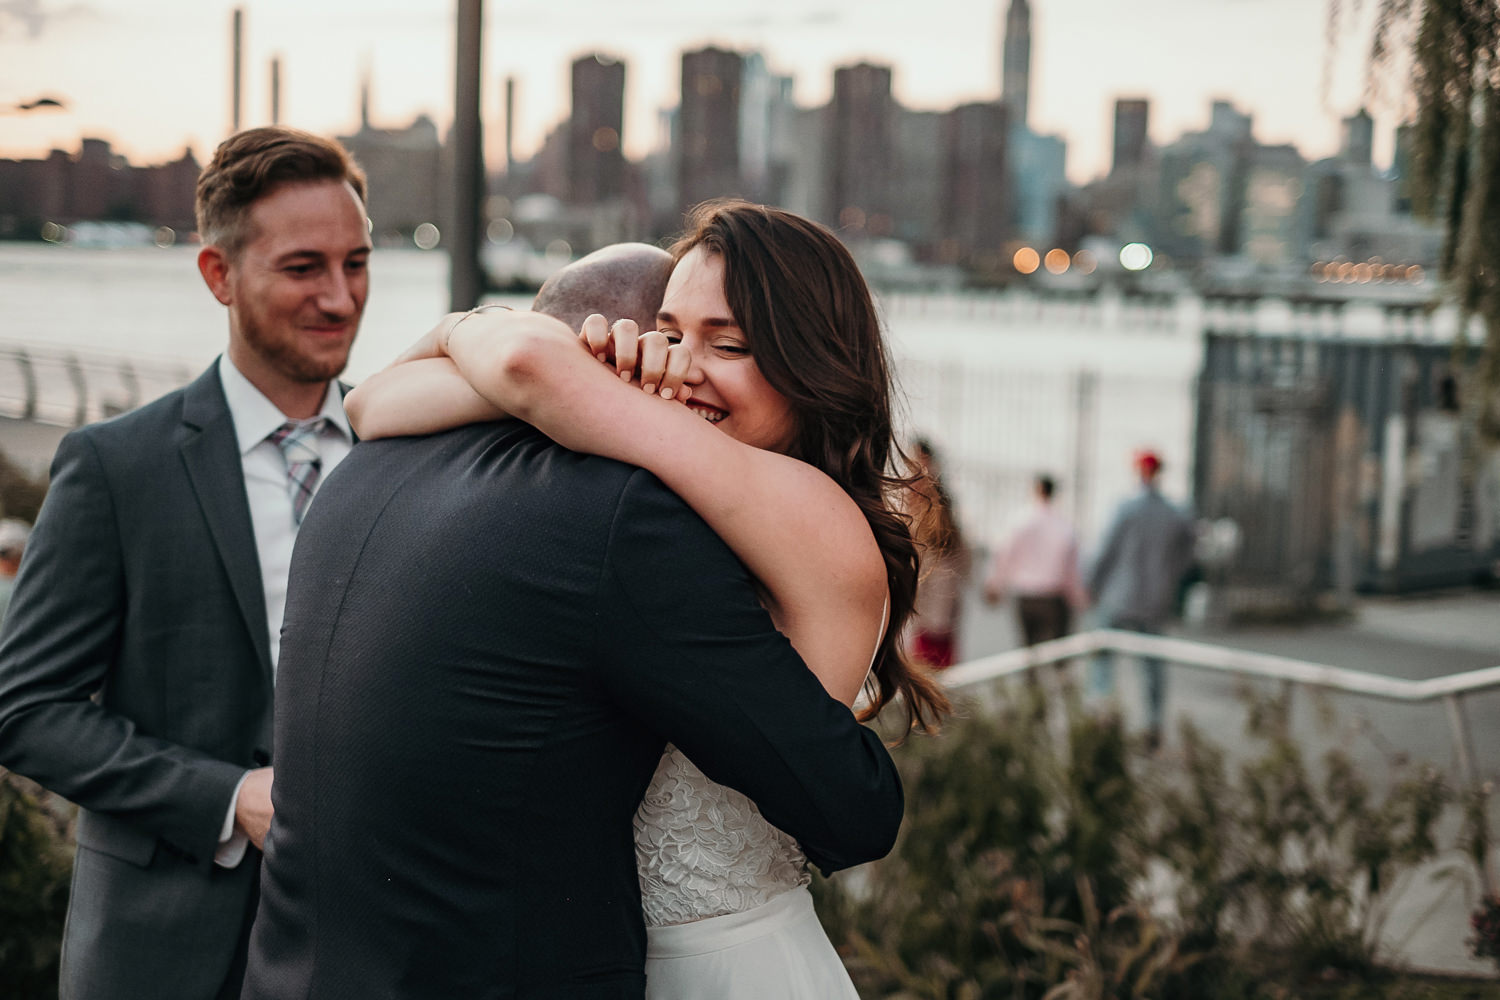 newlyweds tightly hugging bride smiling